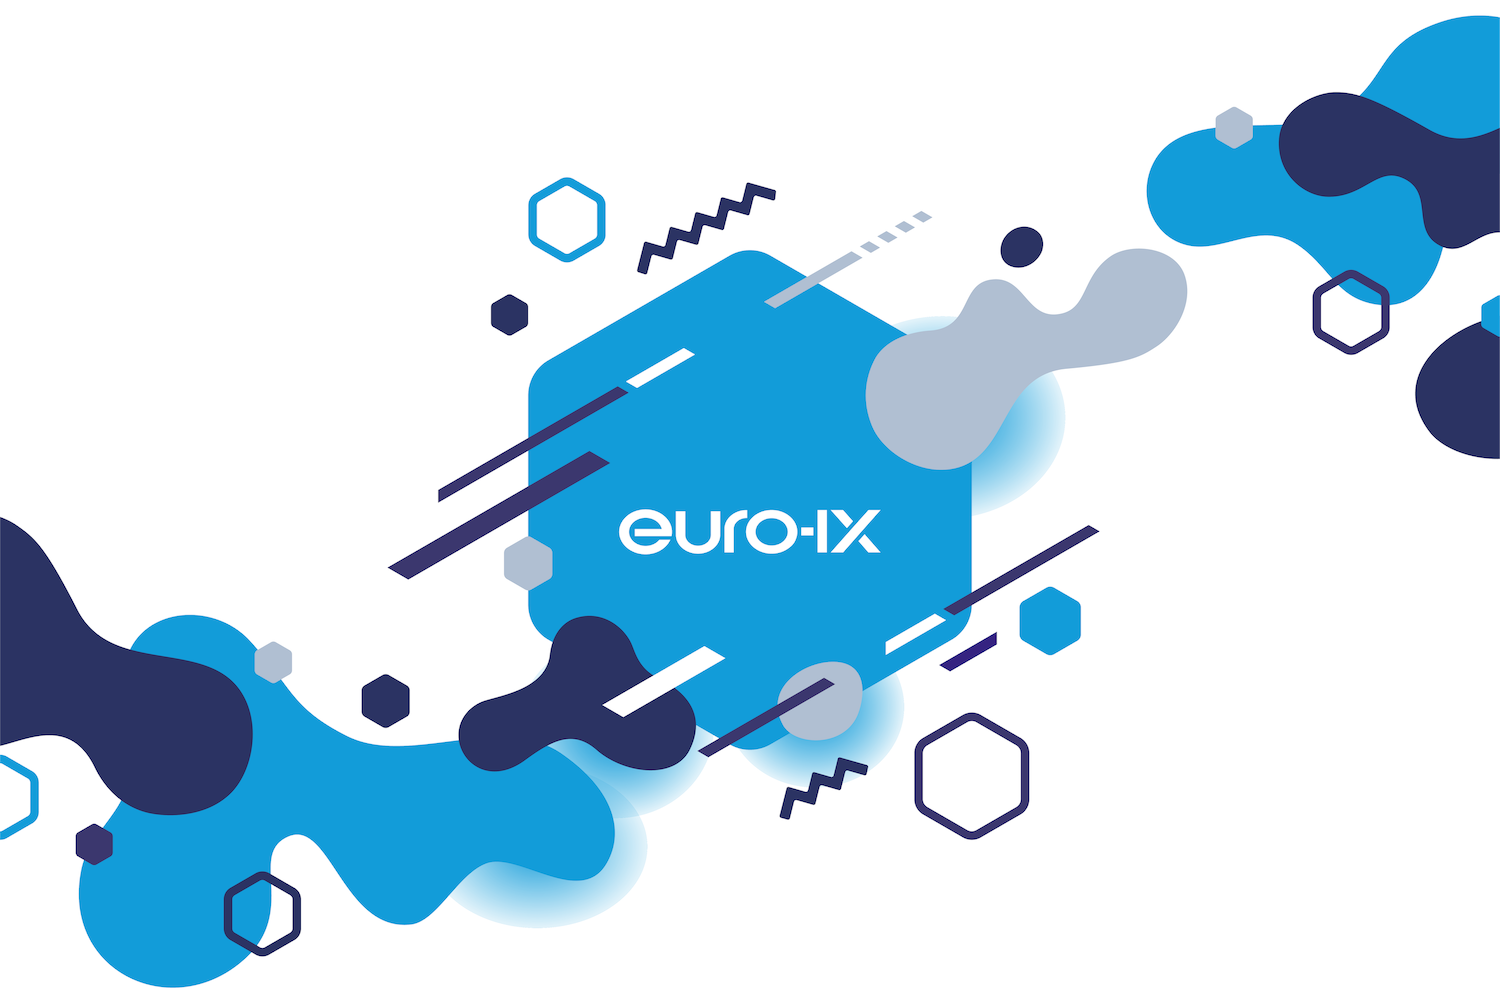 euroix-standard-2-small.png